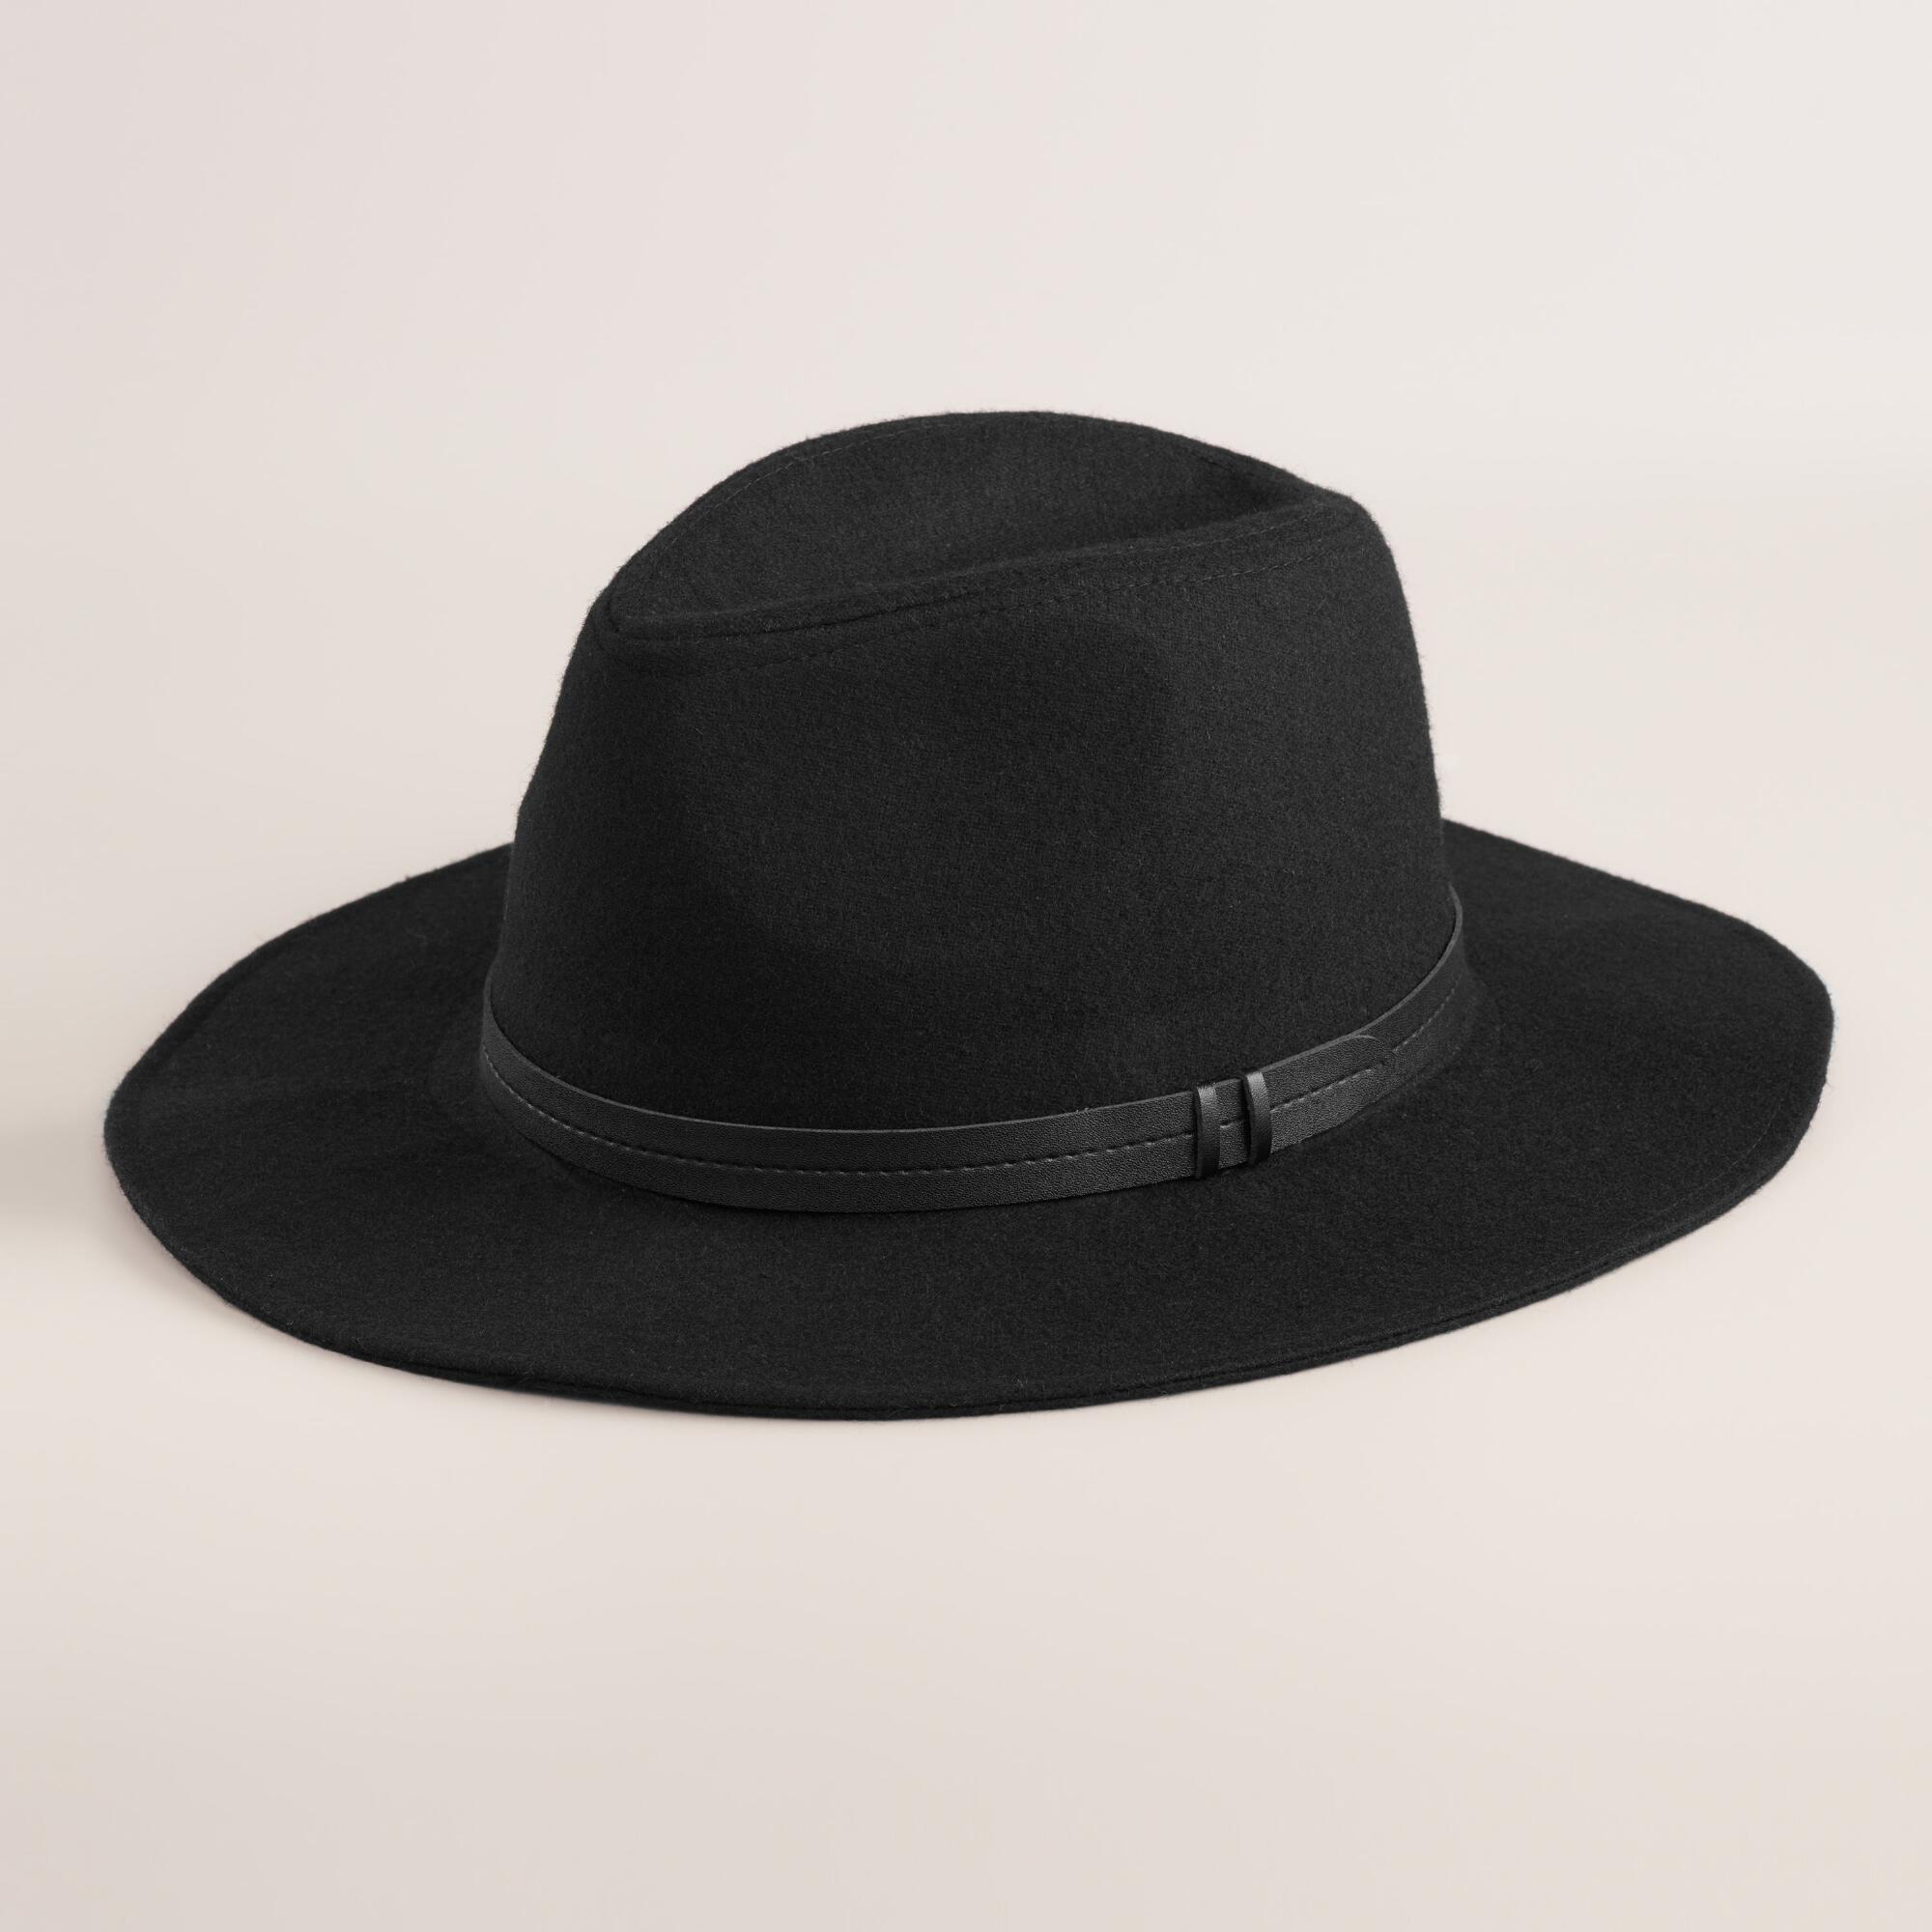 Find black wool fedora hat at ShopStyle. Shop the latest collection of black wool fedora hat from the most popular stores - all in one place.